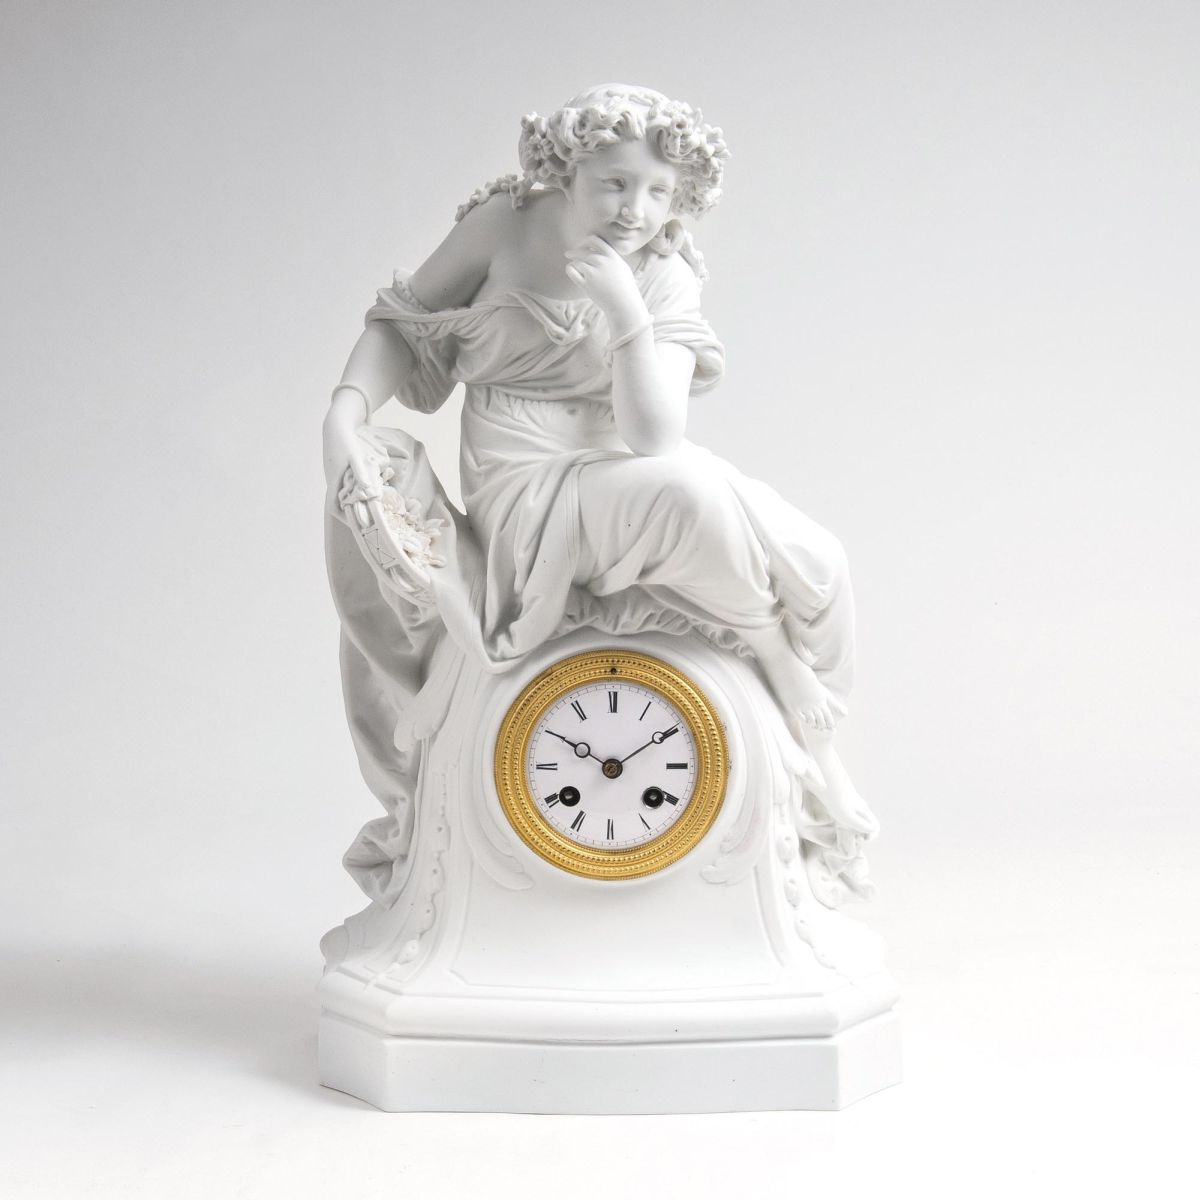 A Bisquit Pendulum 'Allegory of Summer'